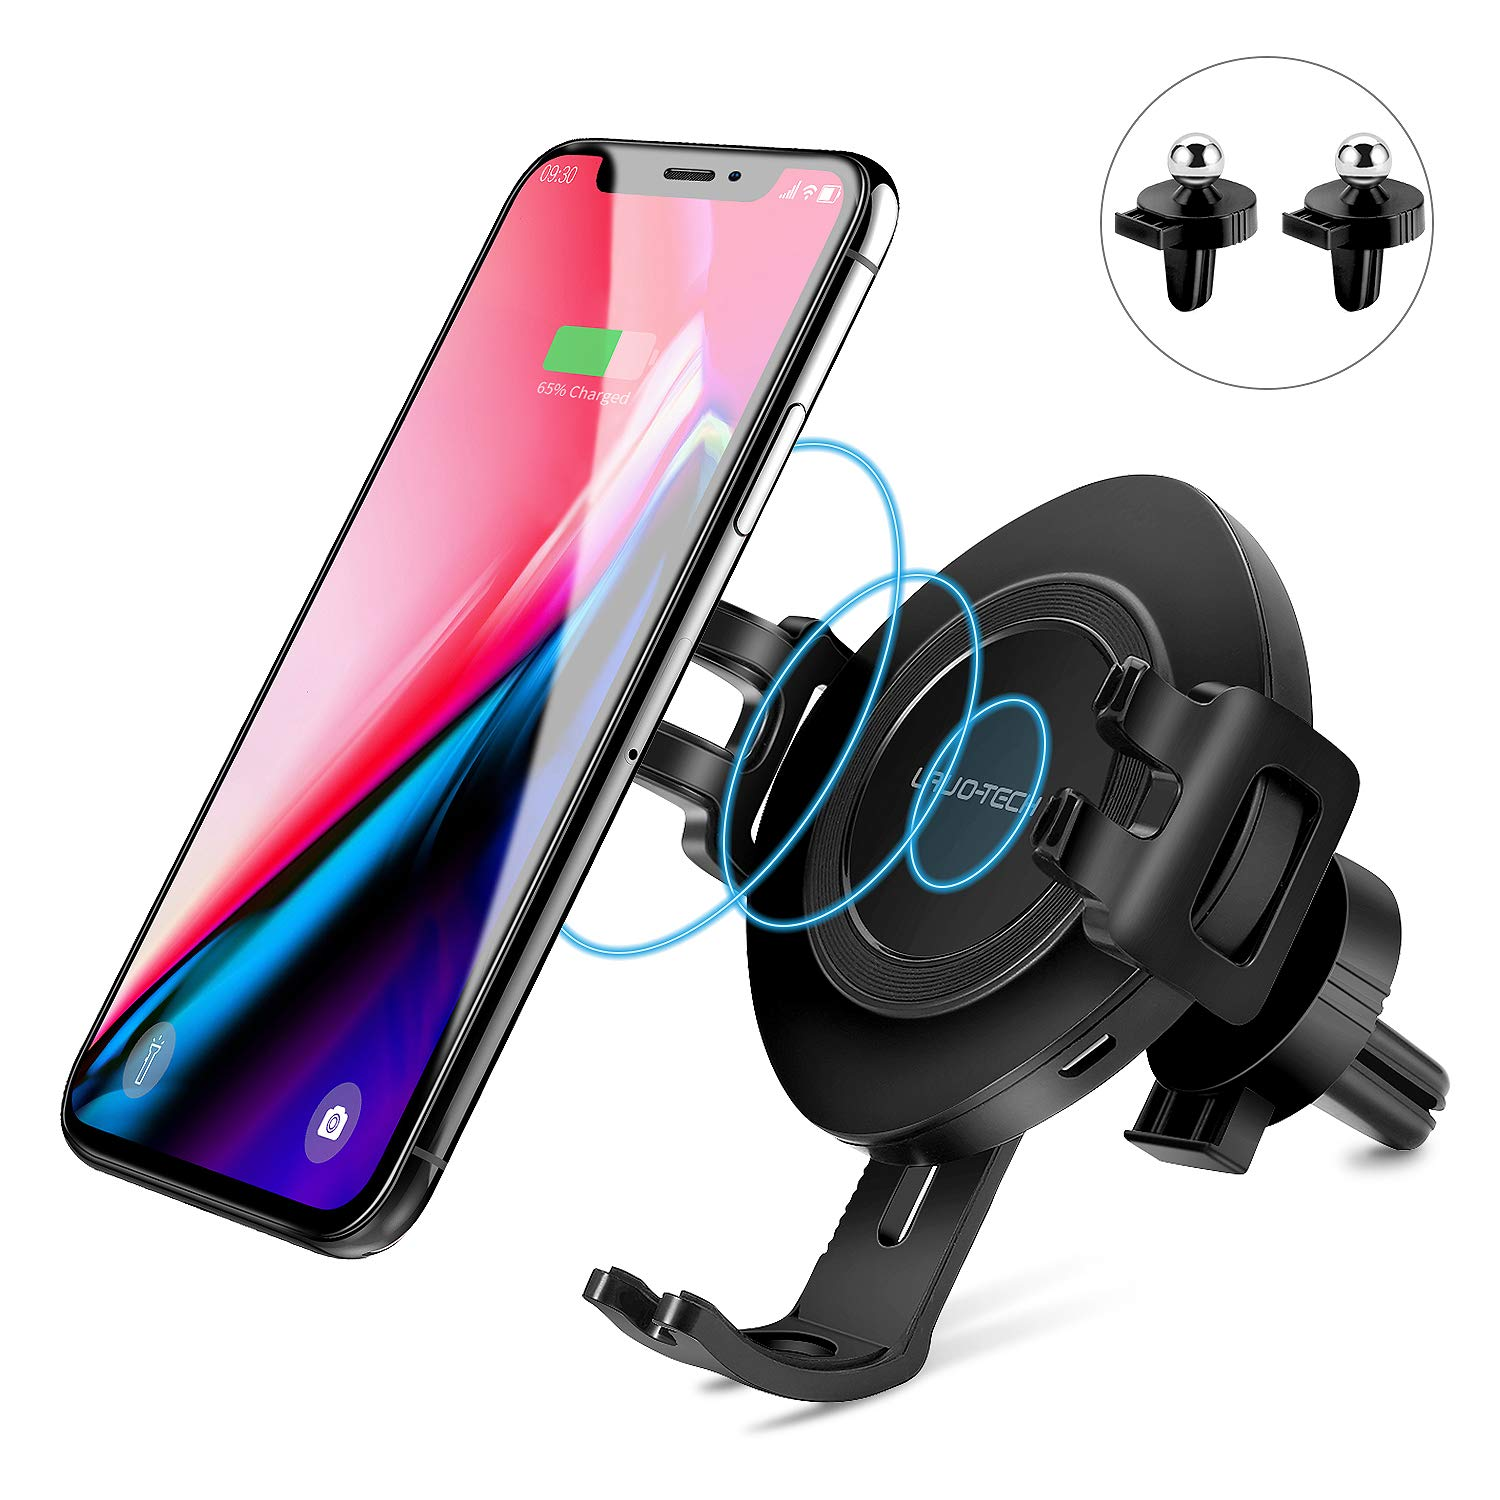 Wireless Car Charger Mount Fast Charging, Lavo-Tech Qi Wireless Charger Air Vent Phone Holder for iPhone X,iPhone Xs/iPhone Xs Max/Samsung Galaxy S9 /S8/Note 9/Note 8 and Other Qi Enabled Devices by LAVO-TECH